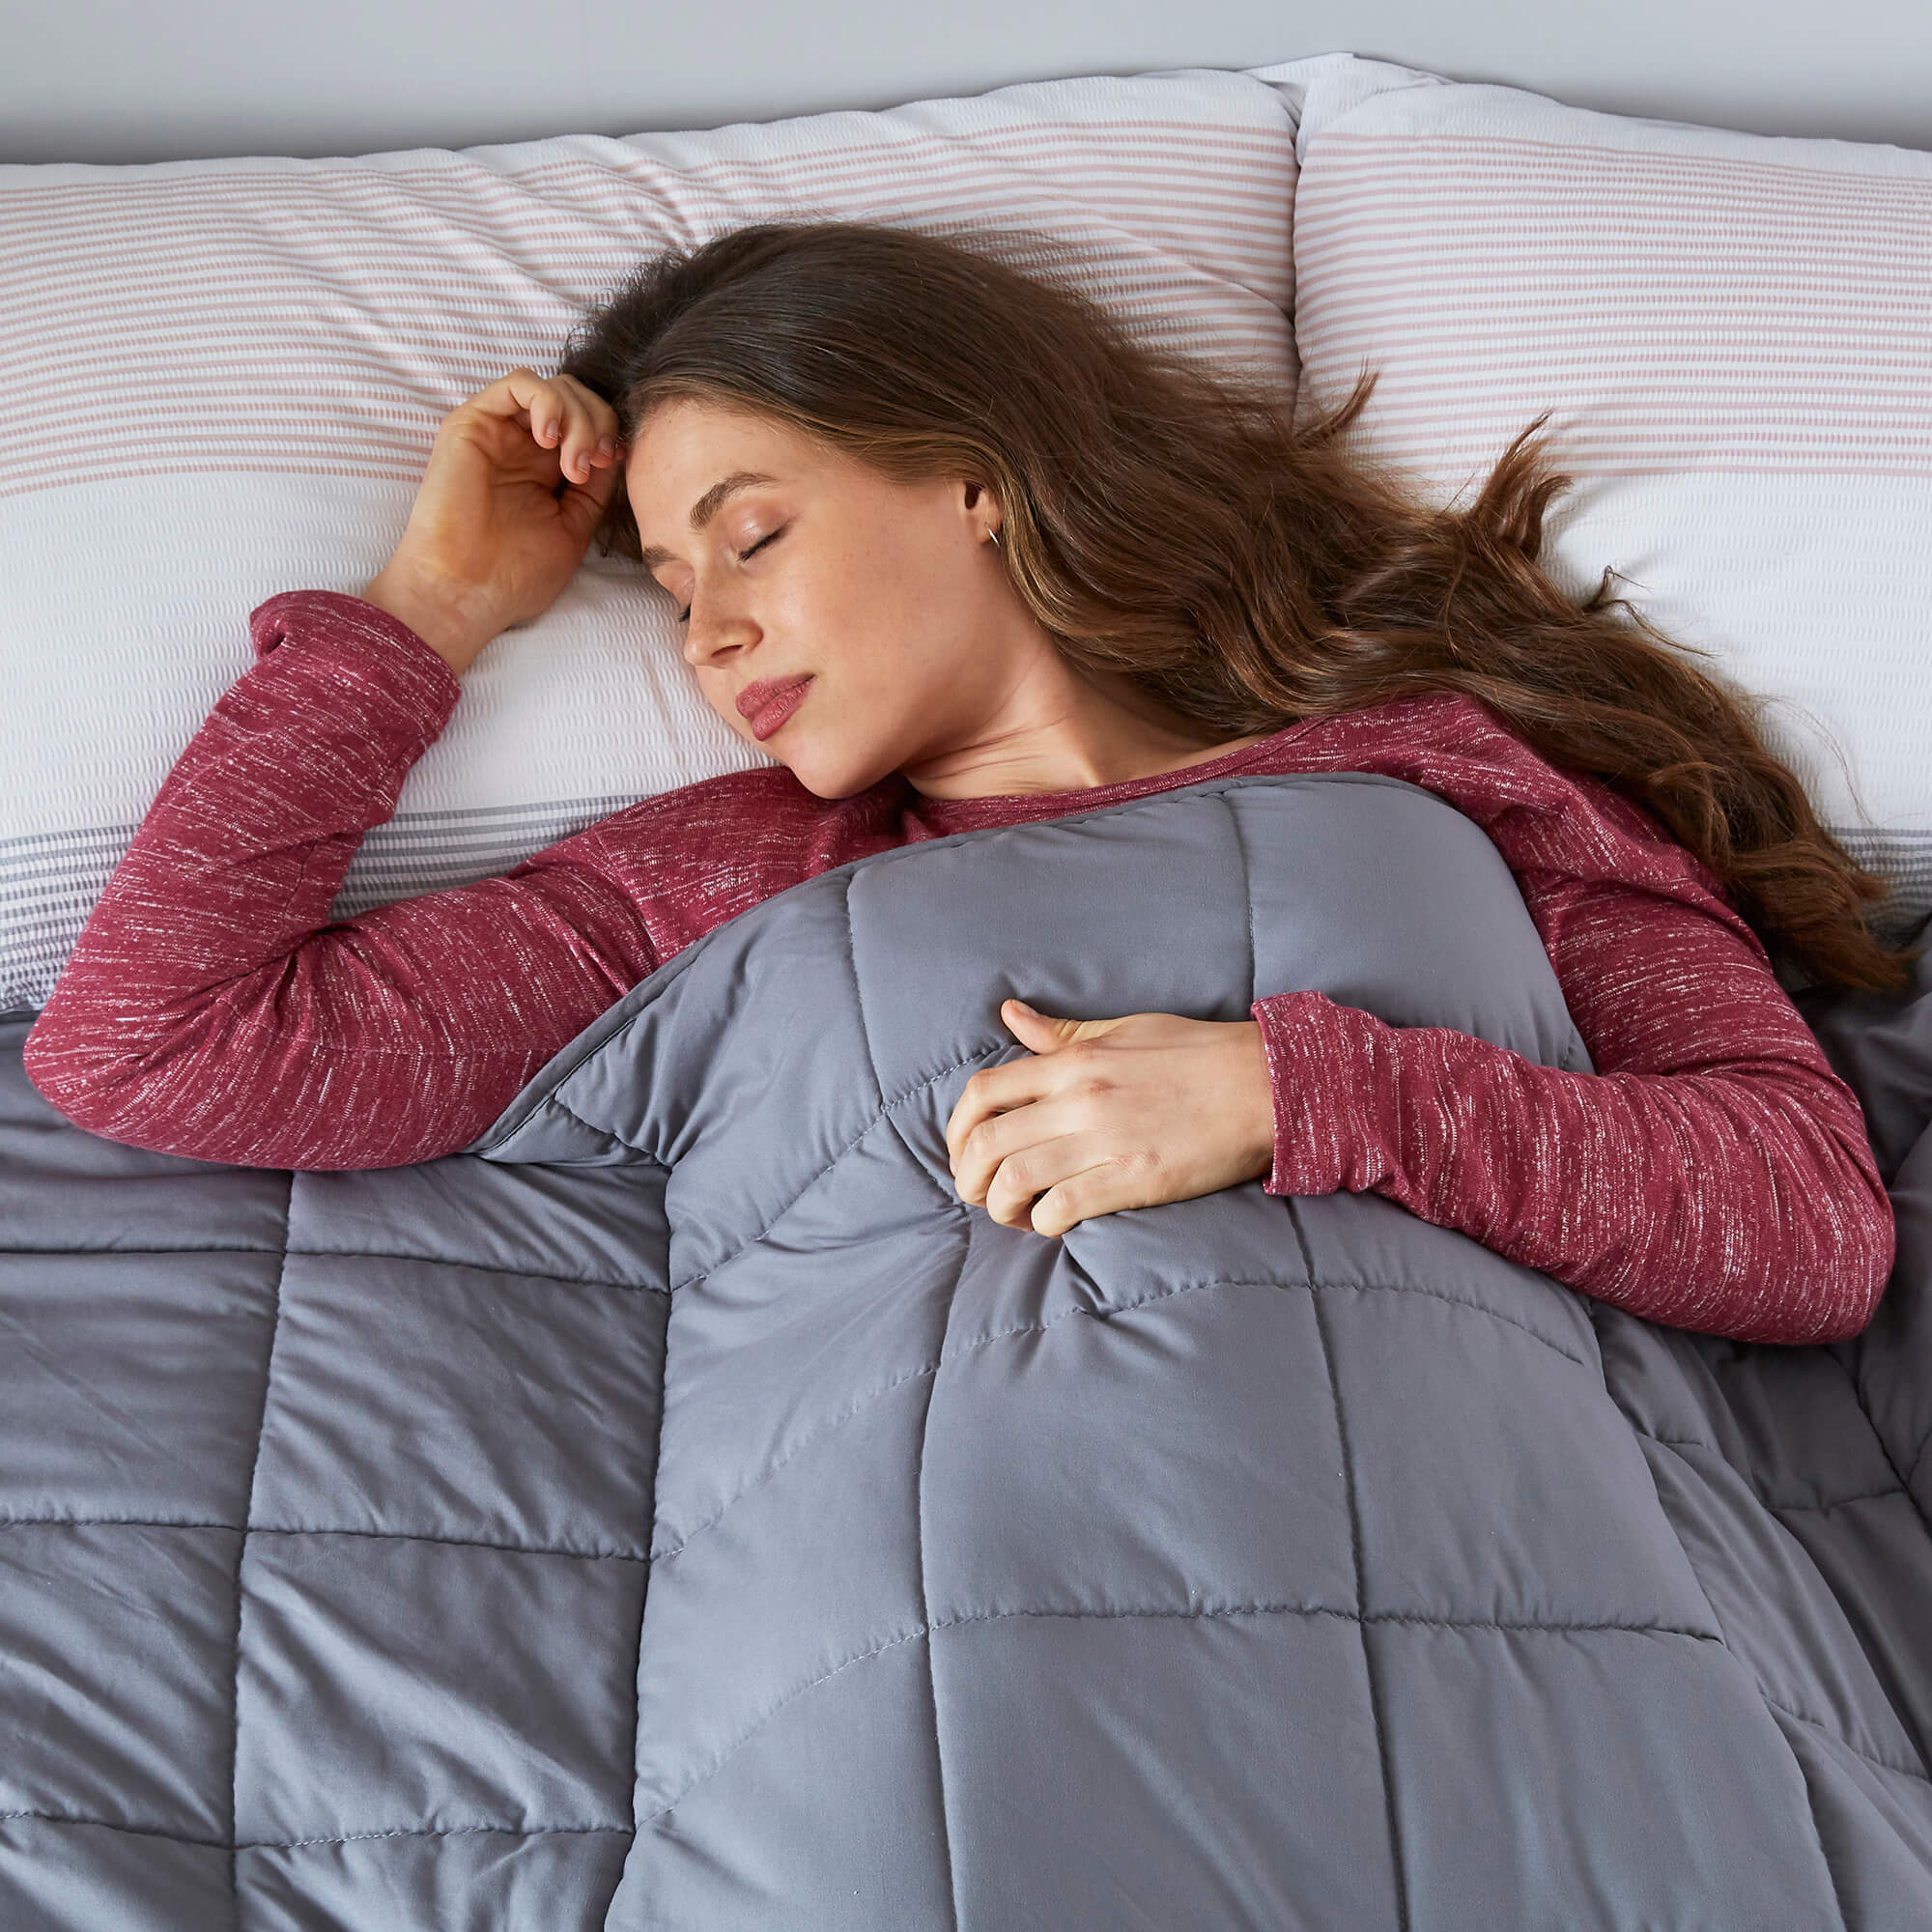 A woman sleeping under a weighted blanket